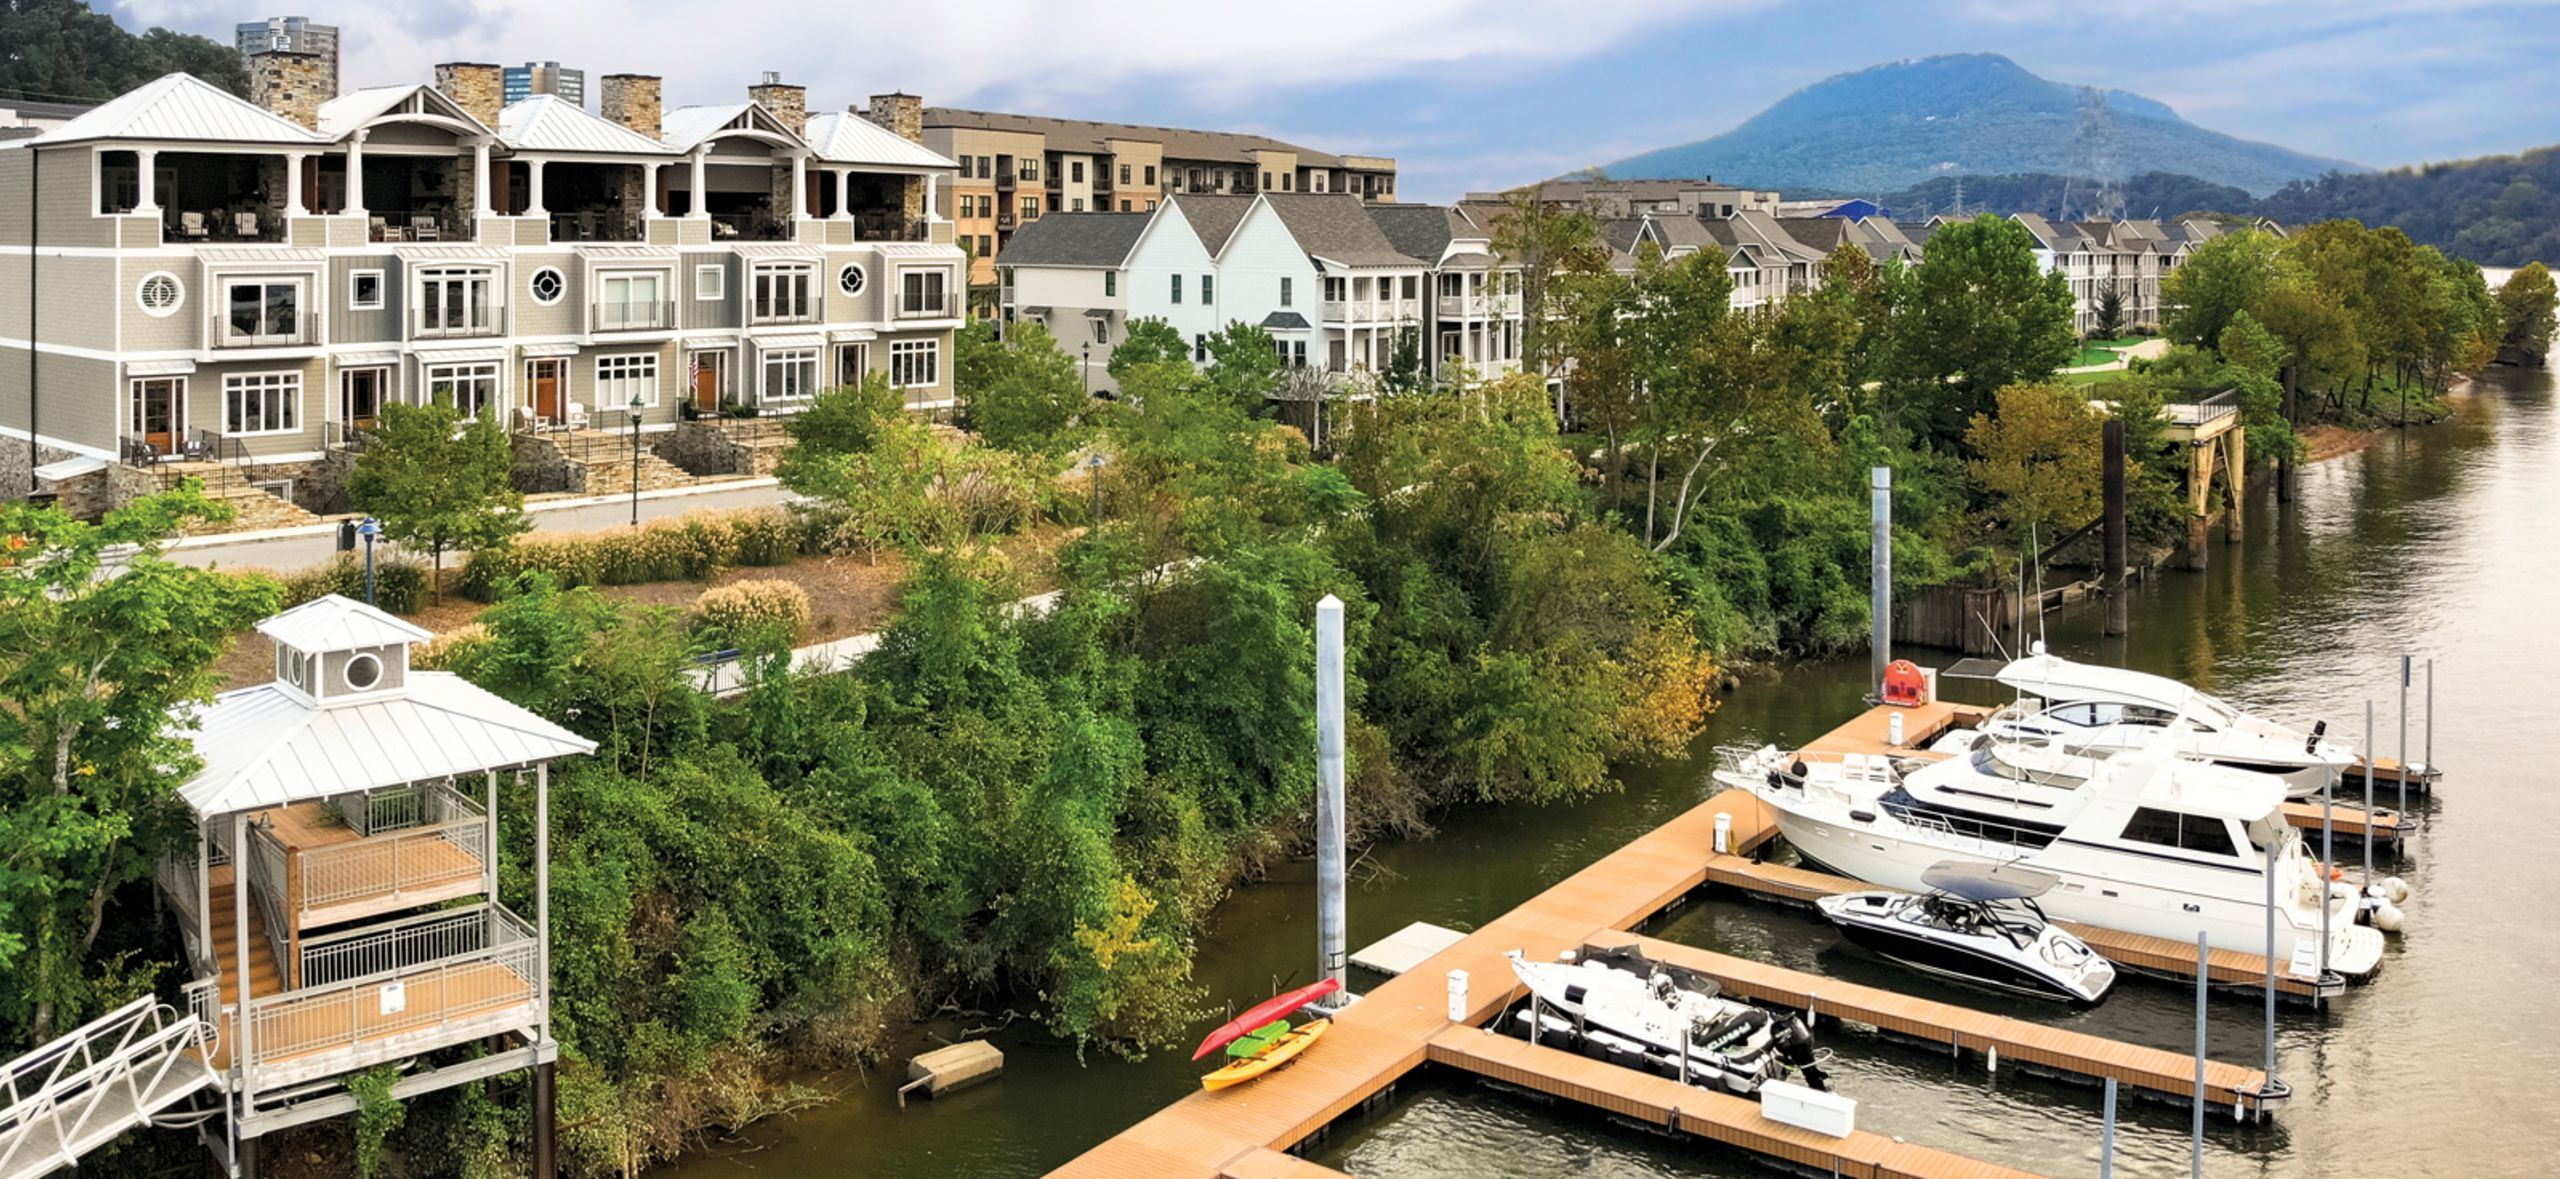 Townhomes include perpetual lease of private boat slip